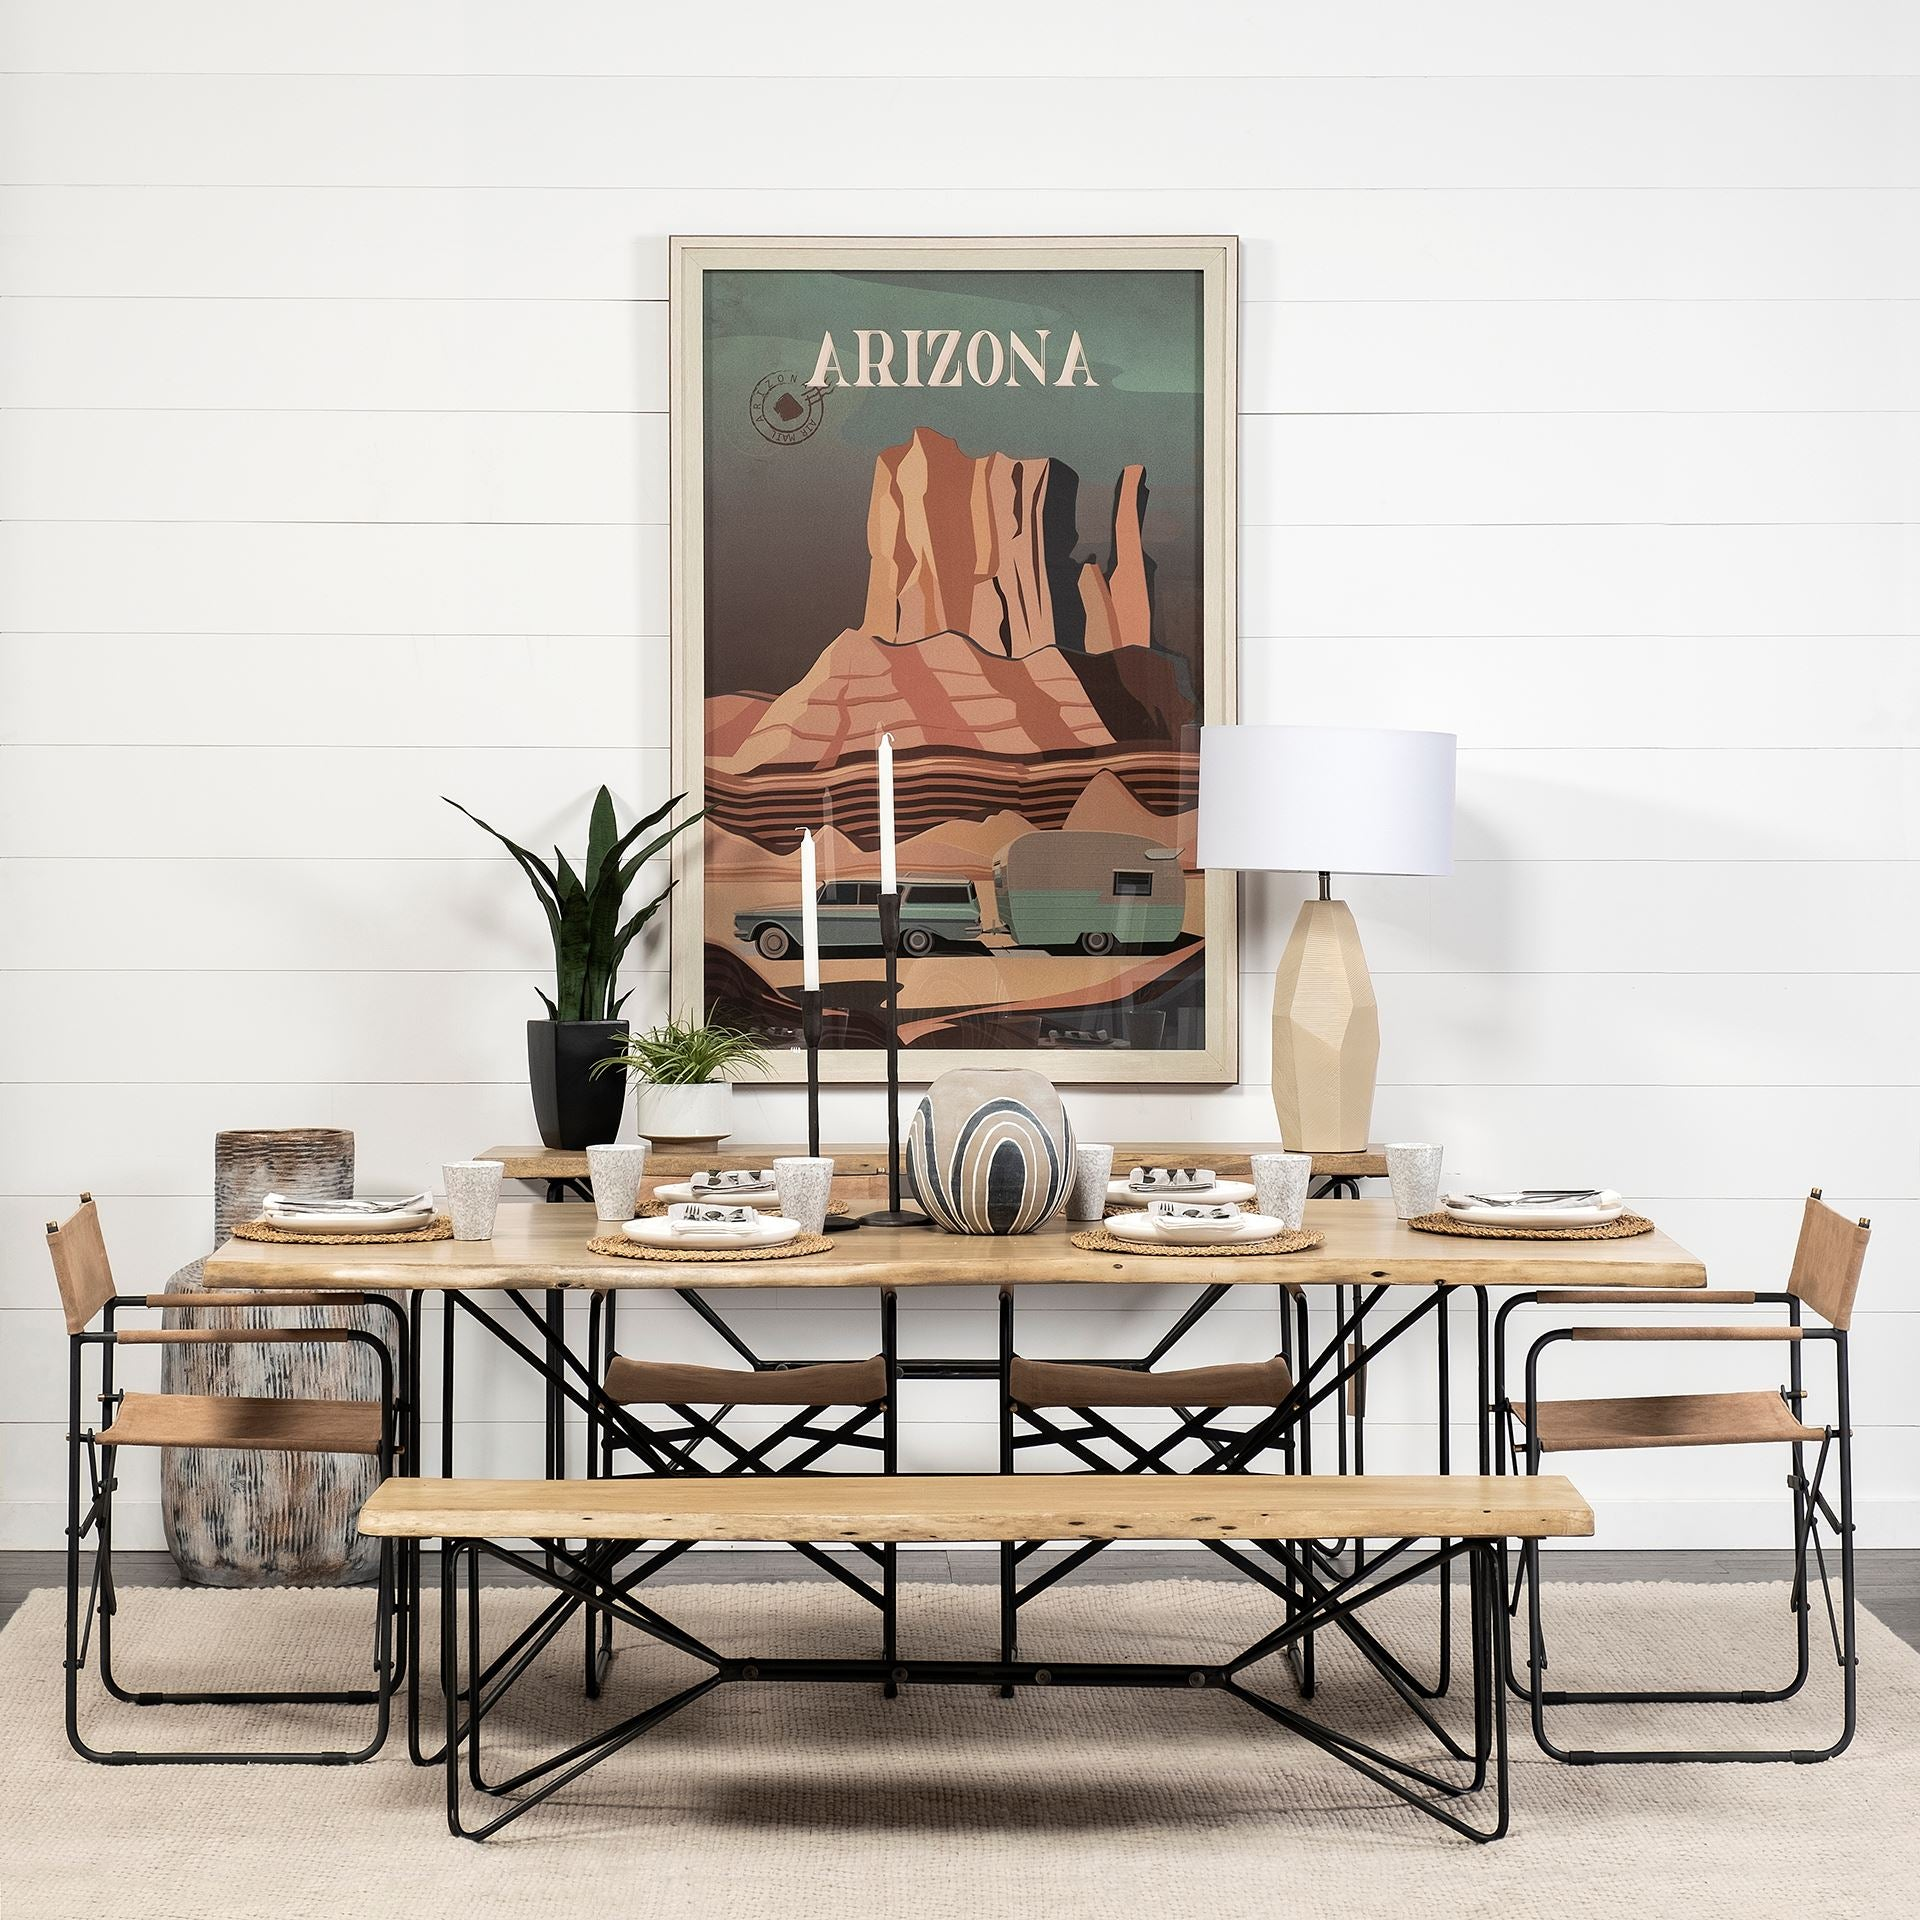 The Papillion II Live Edge Acacia Wood Dining Table | Calgary's Furniture Store